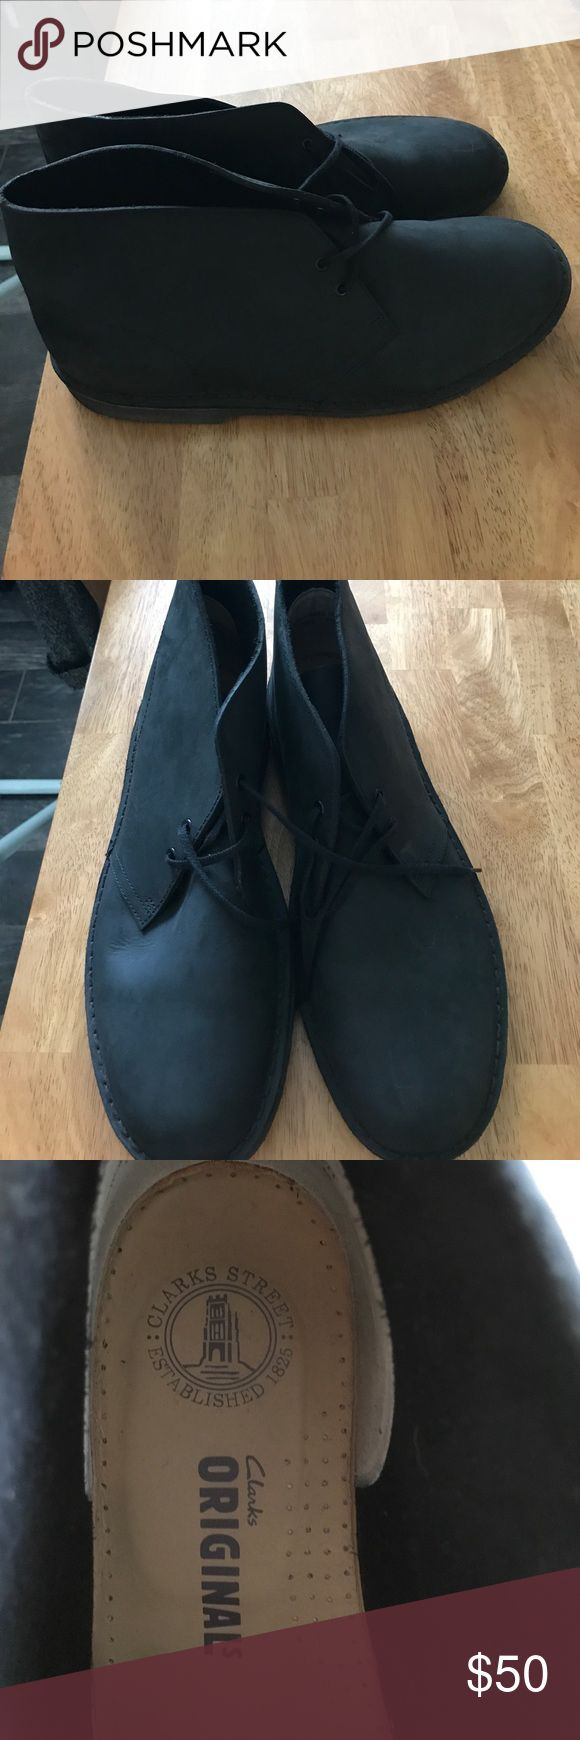 Size 11 Mens Clarks Boot Worn once and in almost perfect condition!! No box. Make me an offer! Clarks Shoes Boots